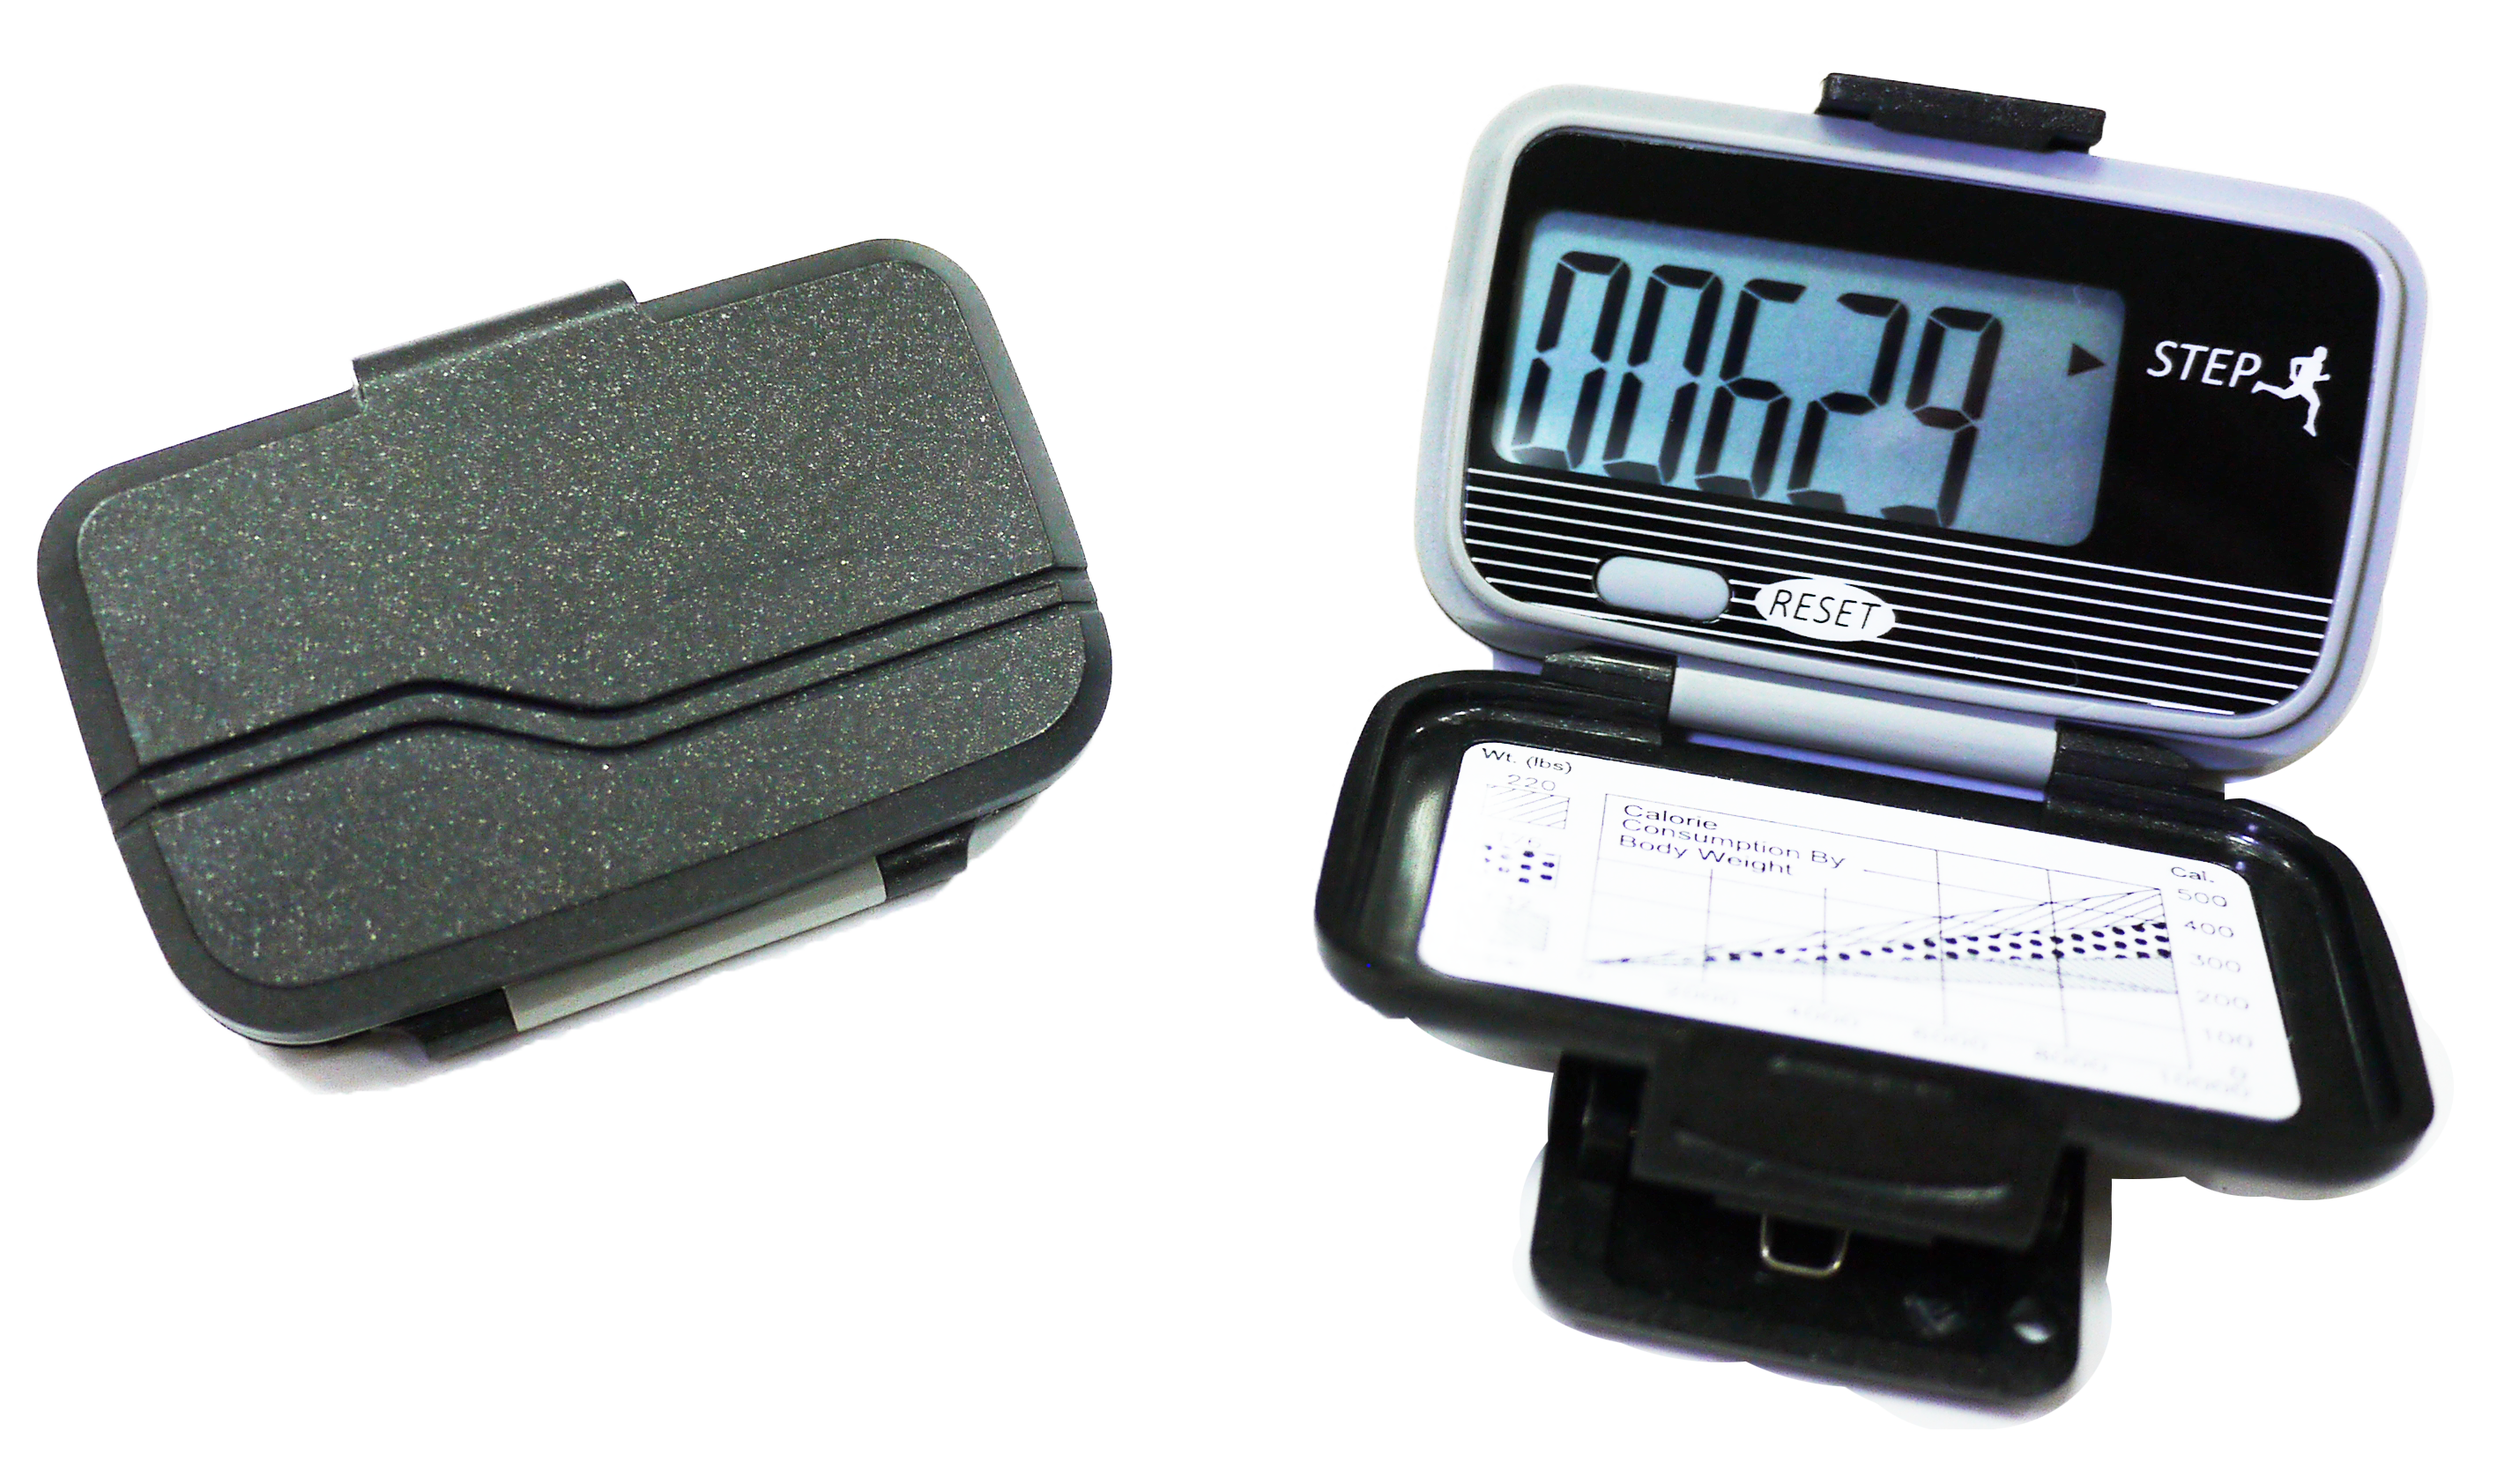 H-311: Simple function pedometer